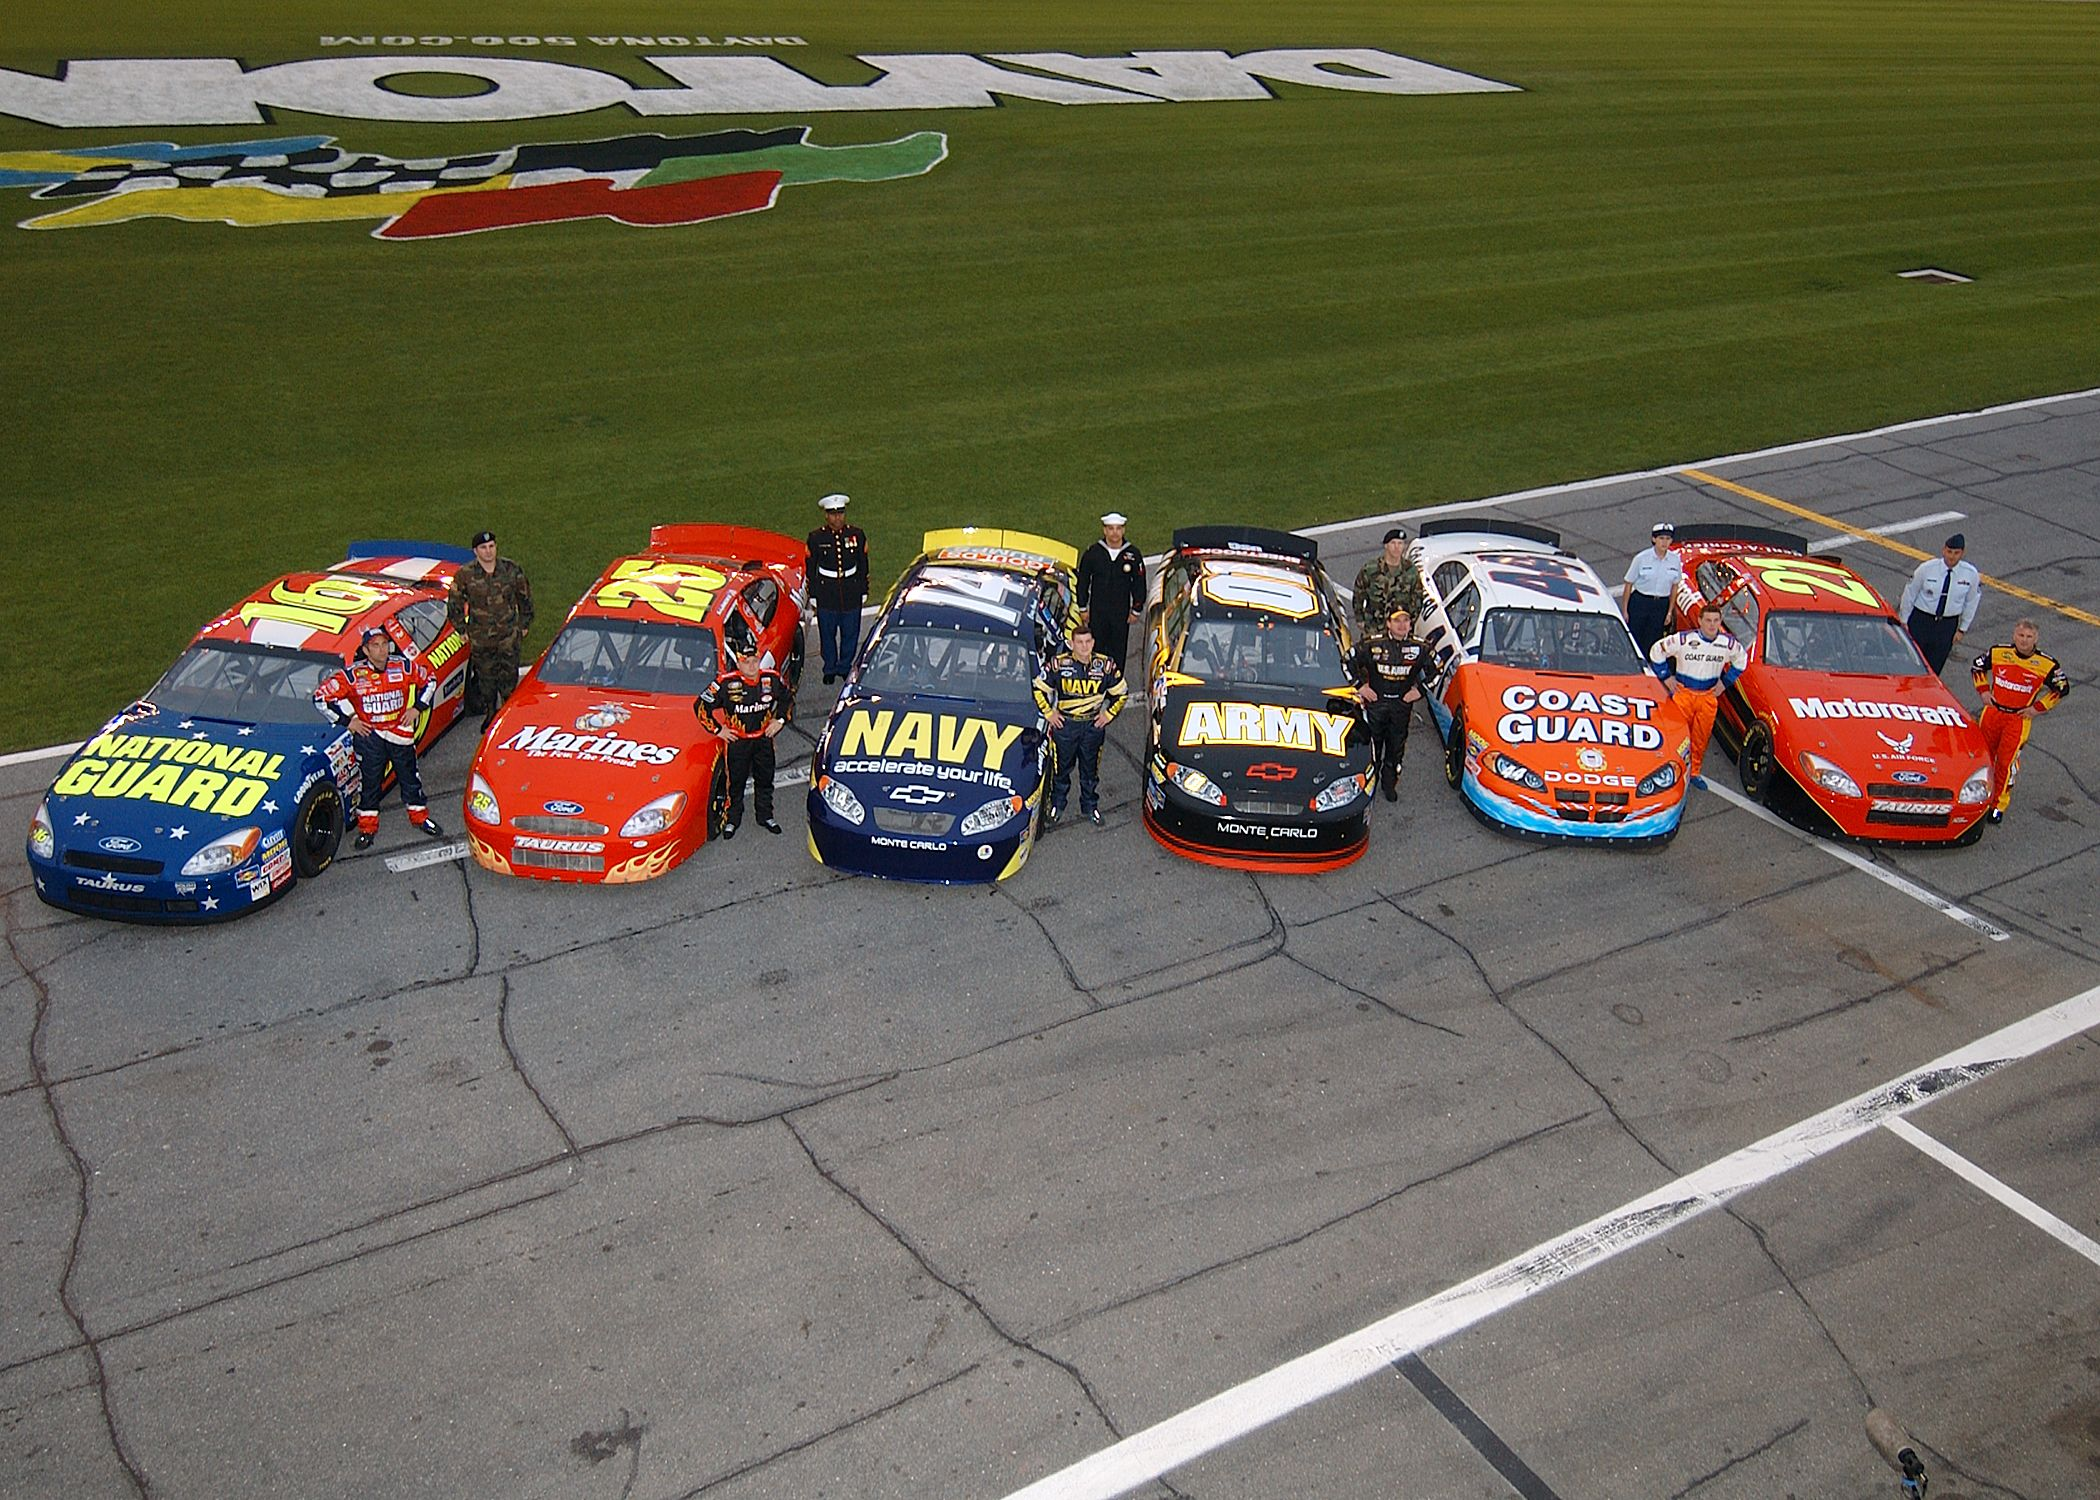 Paint schemes coca cola 600 free download image about all car type - Find This Pin And More On All Auto Racing All The Time